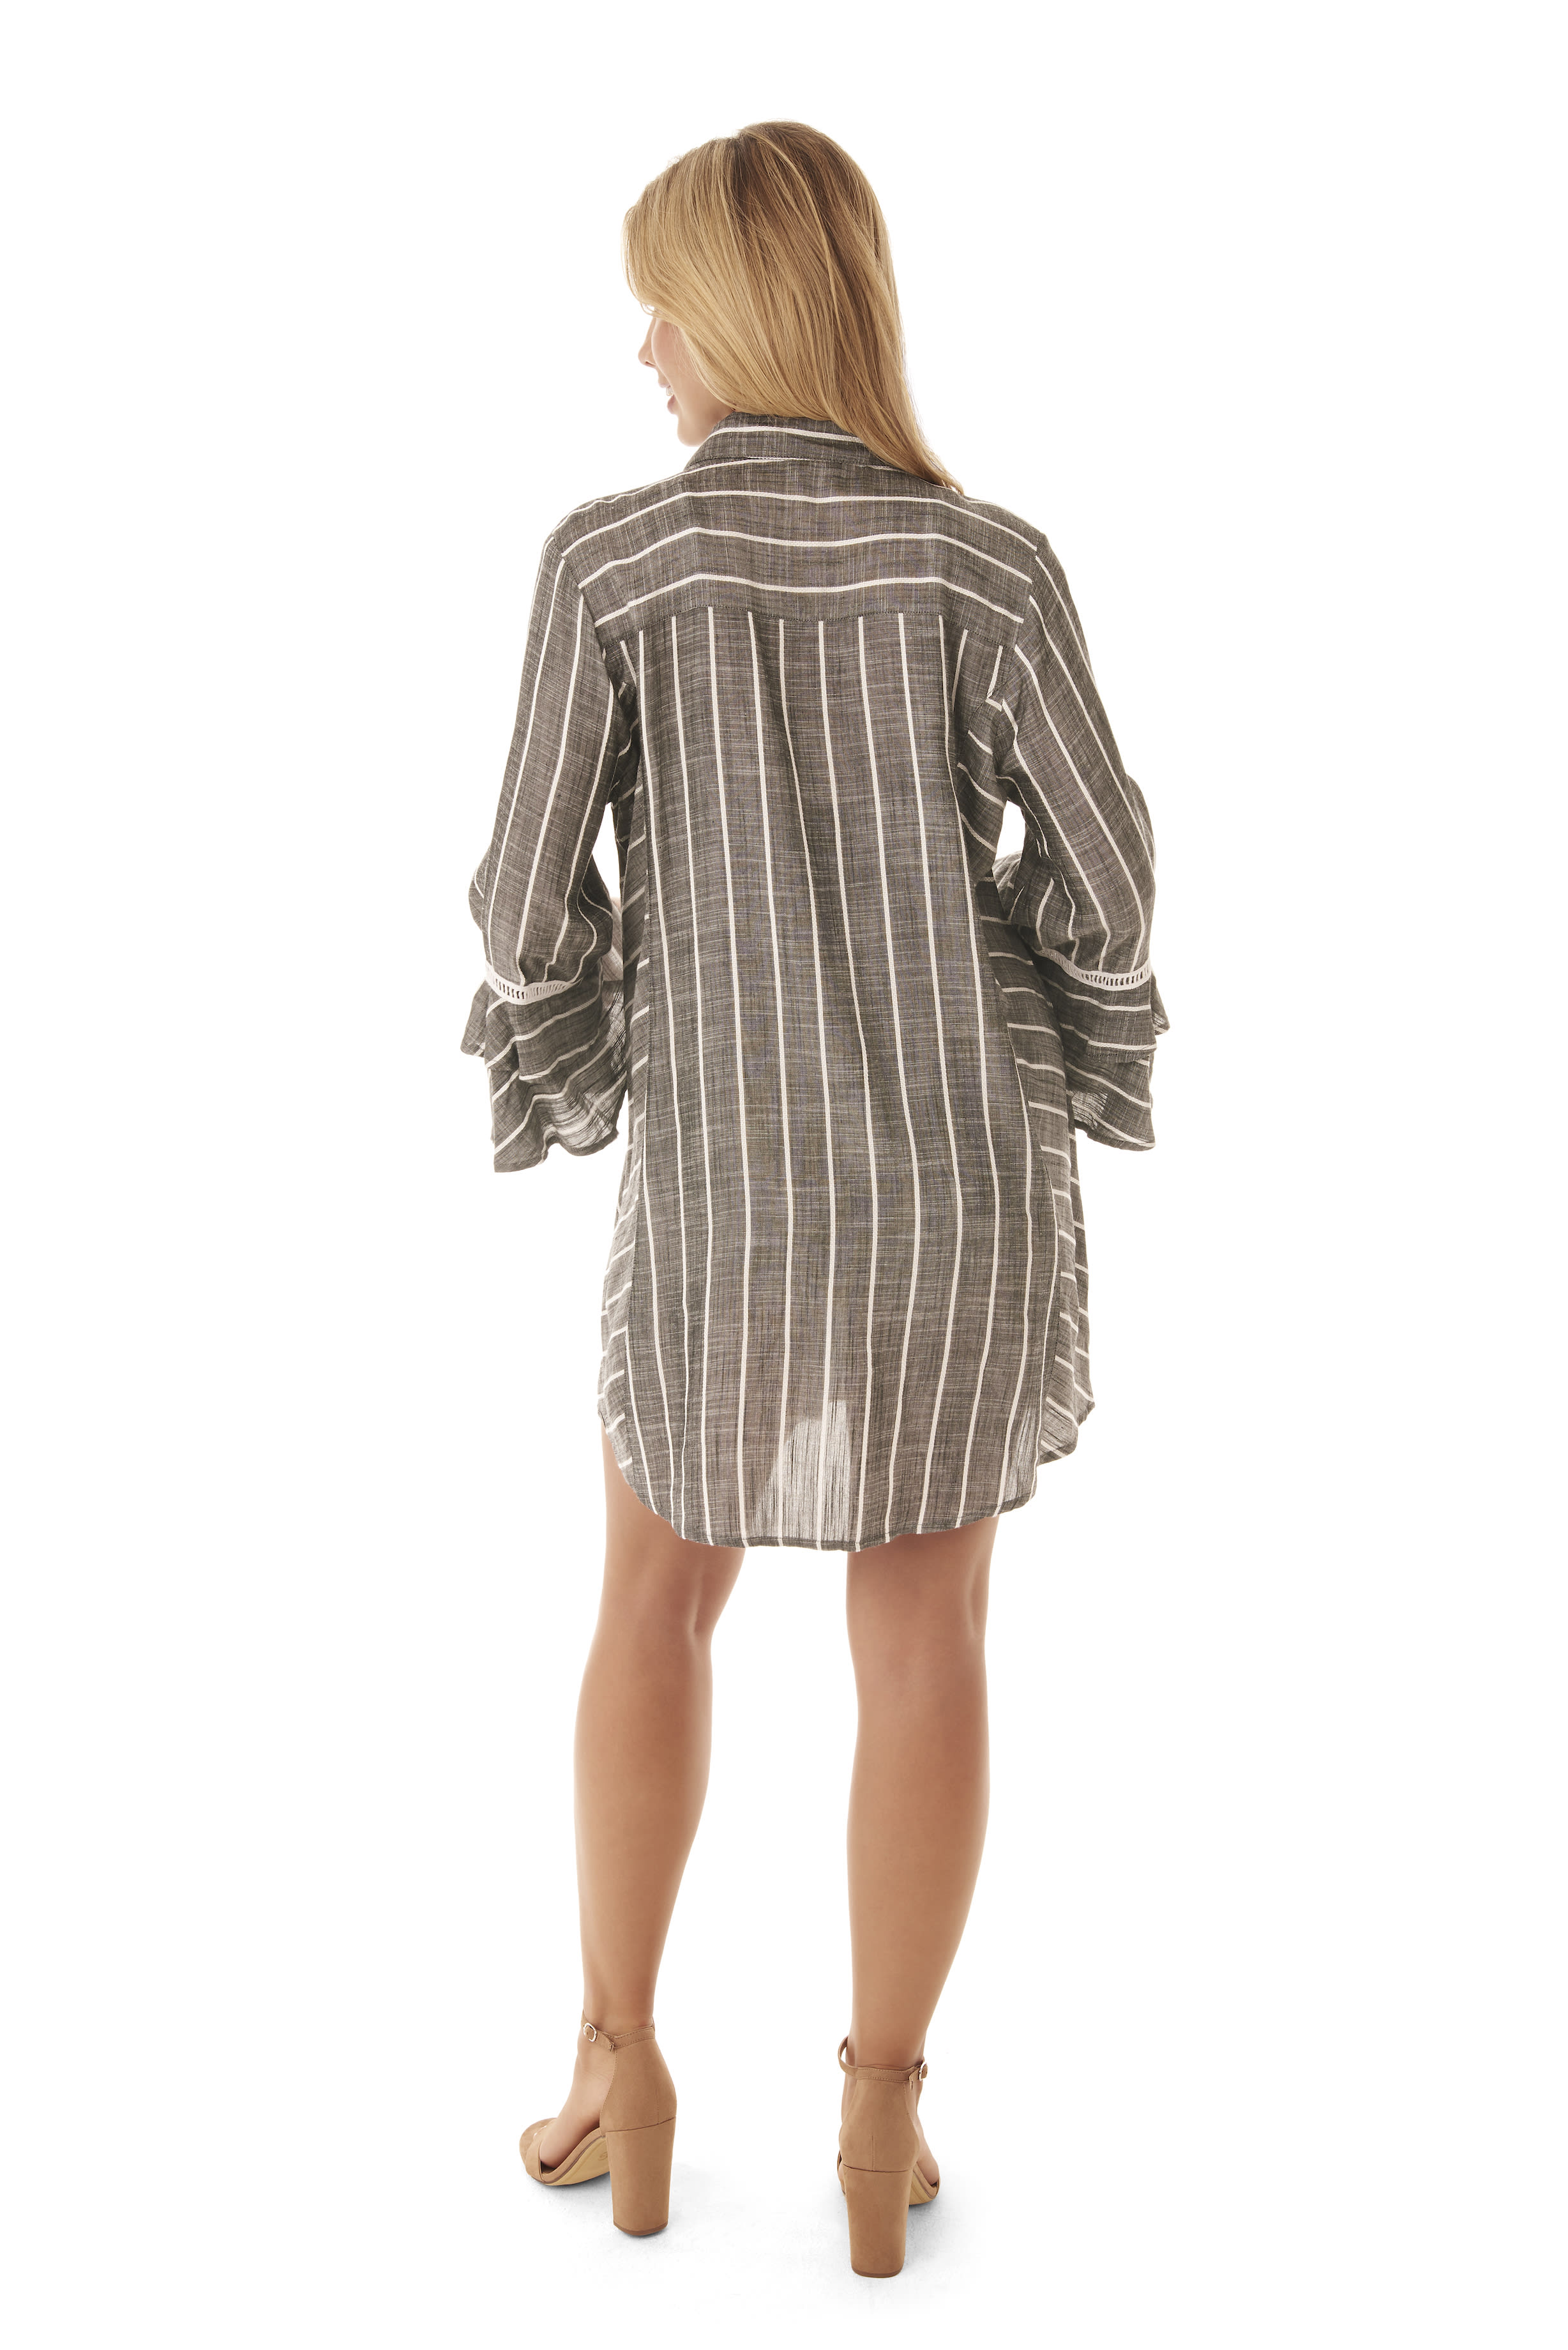 Penbrooke Ruffle Sleeve Oversize Shirt Swimsuit Cover-Up - Grey - Back